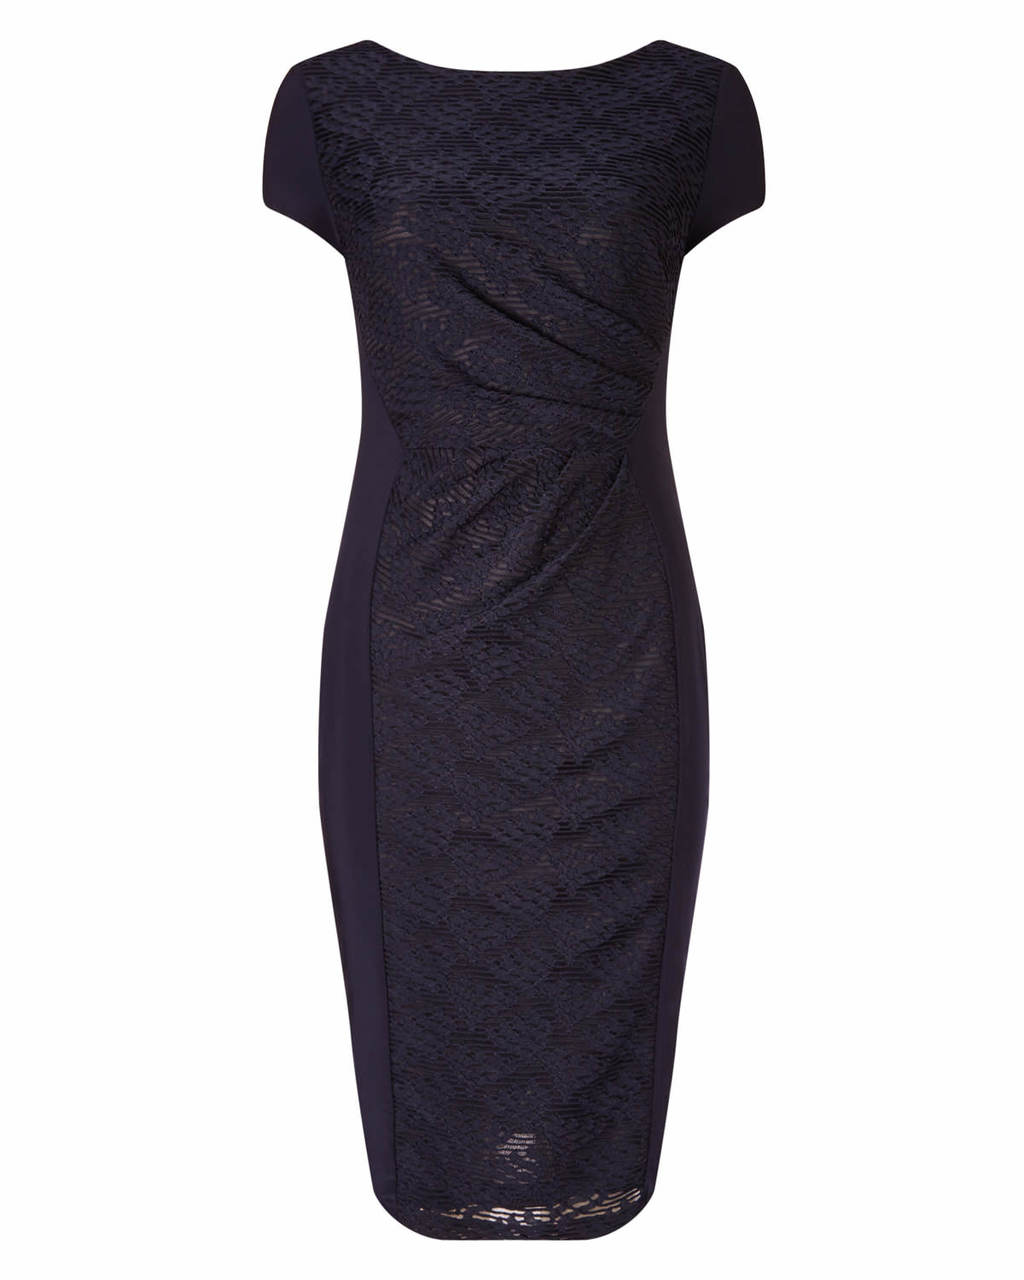 Allesandra Textured Dress - length: below the knee; neckline: slash/boat neckline; sleeve style: capped; fit: tight; pattern: plain; style: bodycon; waist detail: flattering waist detail; hip detail: draws attention to hips; predominant colour: navy; occasions: evening, occasion; fibres: polyester/polyamide - 100%; sleeve length: short sleeve; pattern type: fabric; texture group: woven light midweight; season: a/w 2015; wardrobe: event